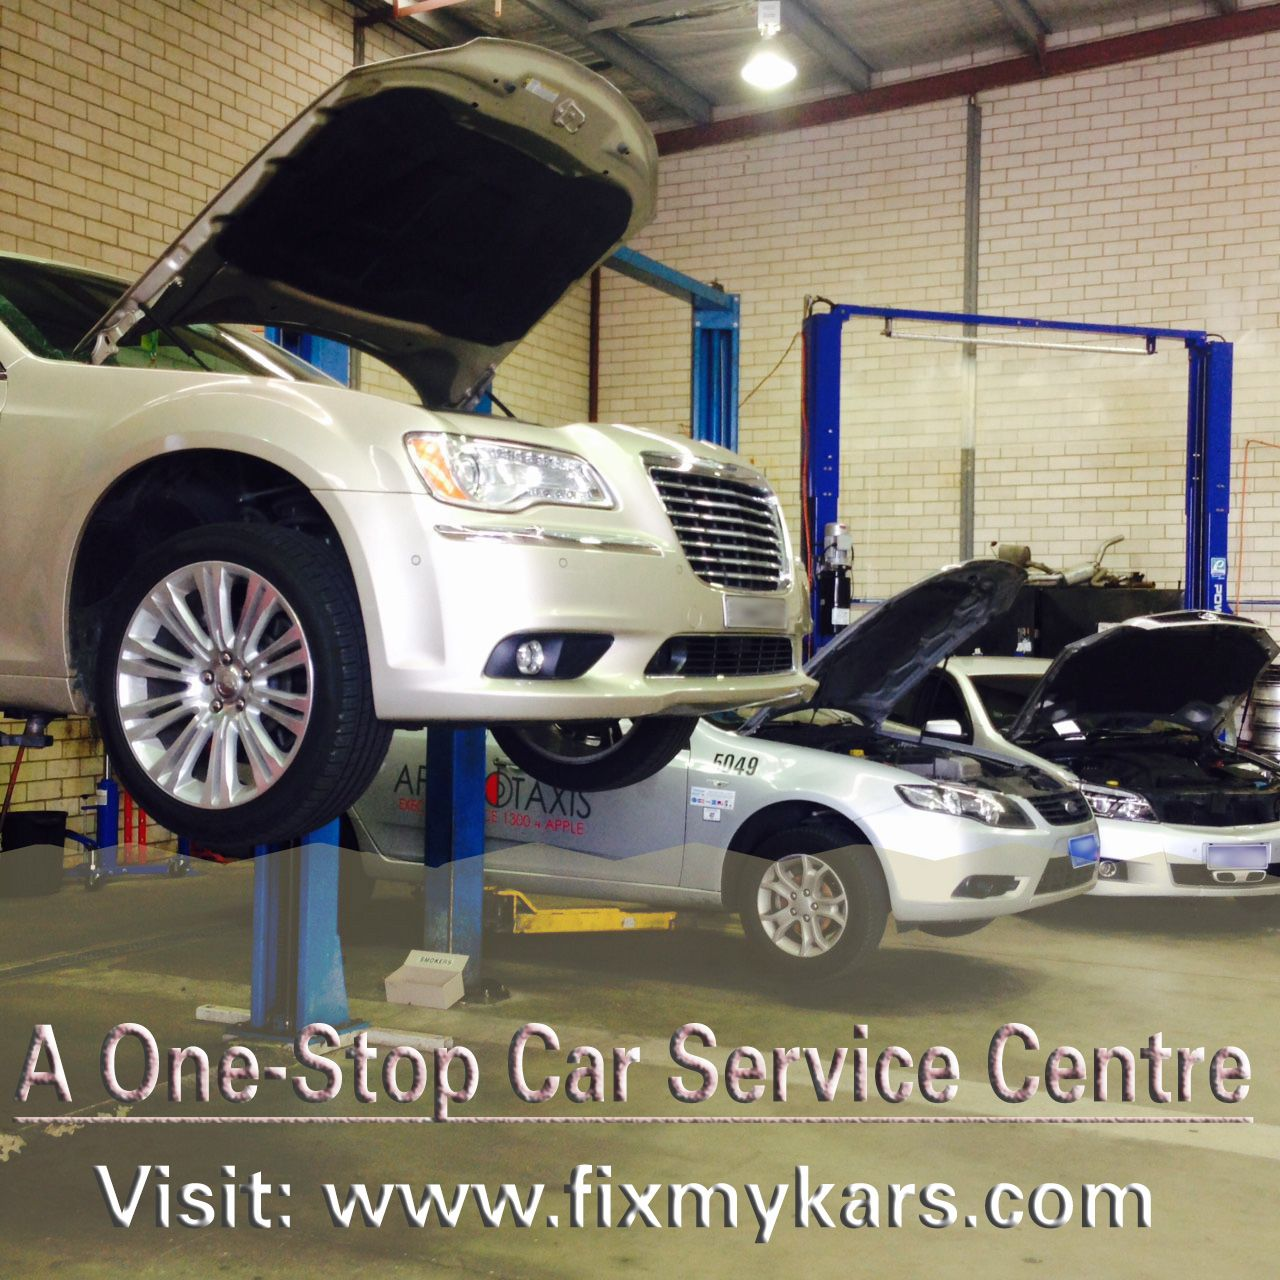 Receive Outstanding Levels Of Customer Service And Value For Money For Your Luxury Vehicle At Bangalor Auto Repair Mobile Mechanic Car Repair Service